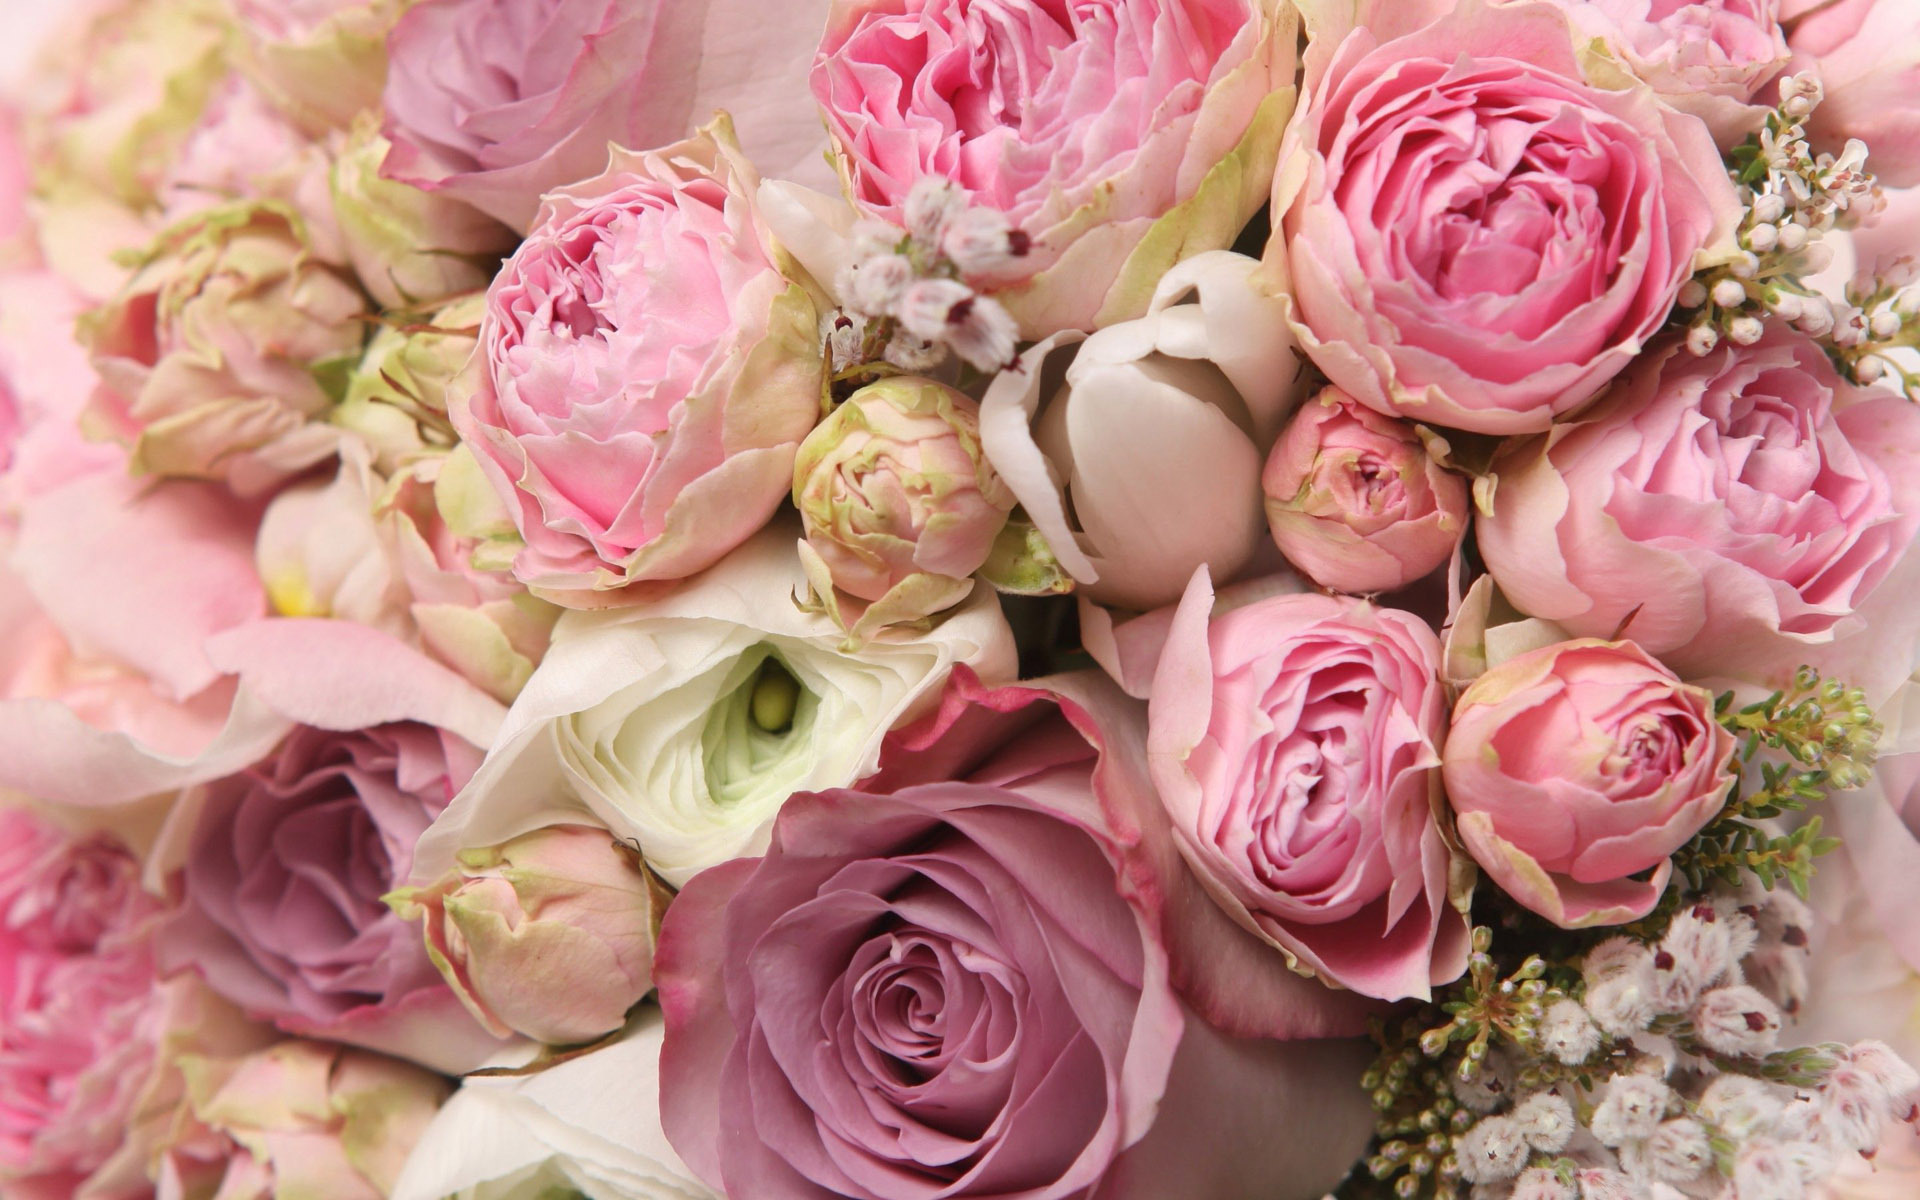 peonies-wallpaper-2